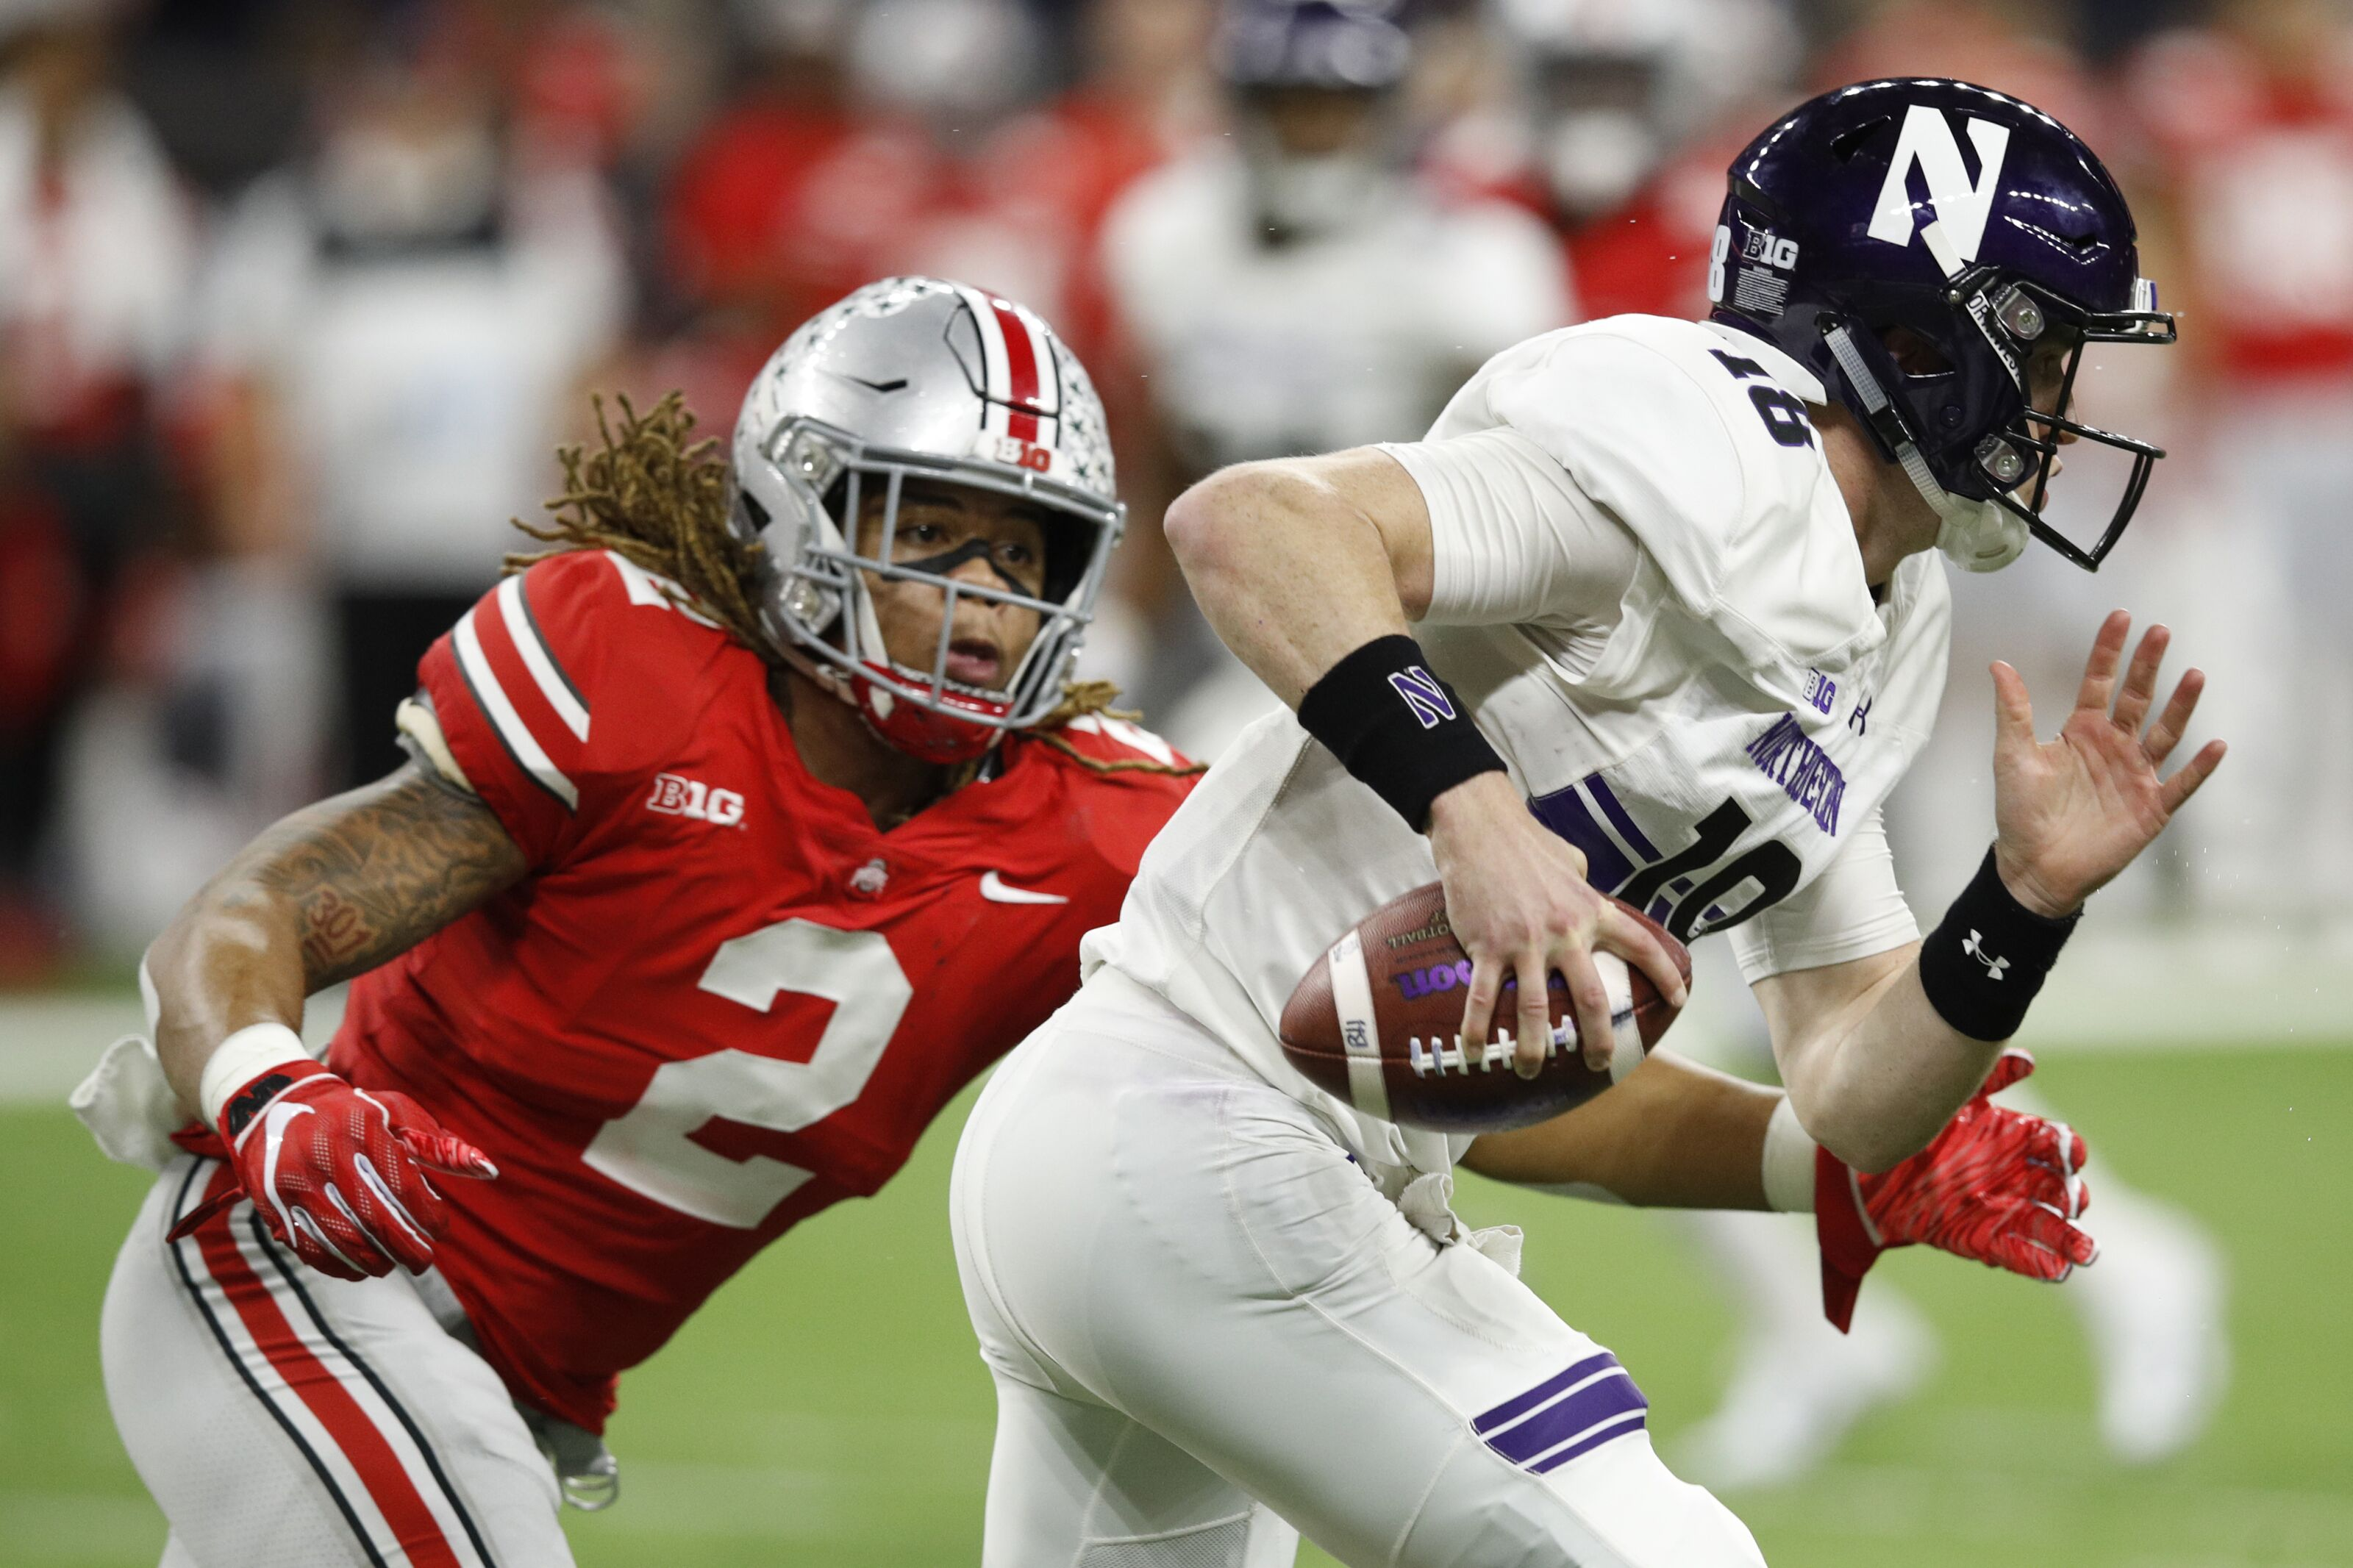 Ohio State Football: Buckeye defense can once again be Silver Bullets